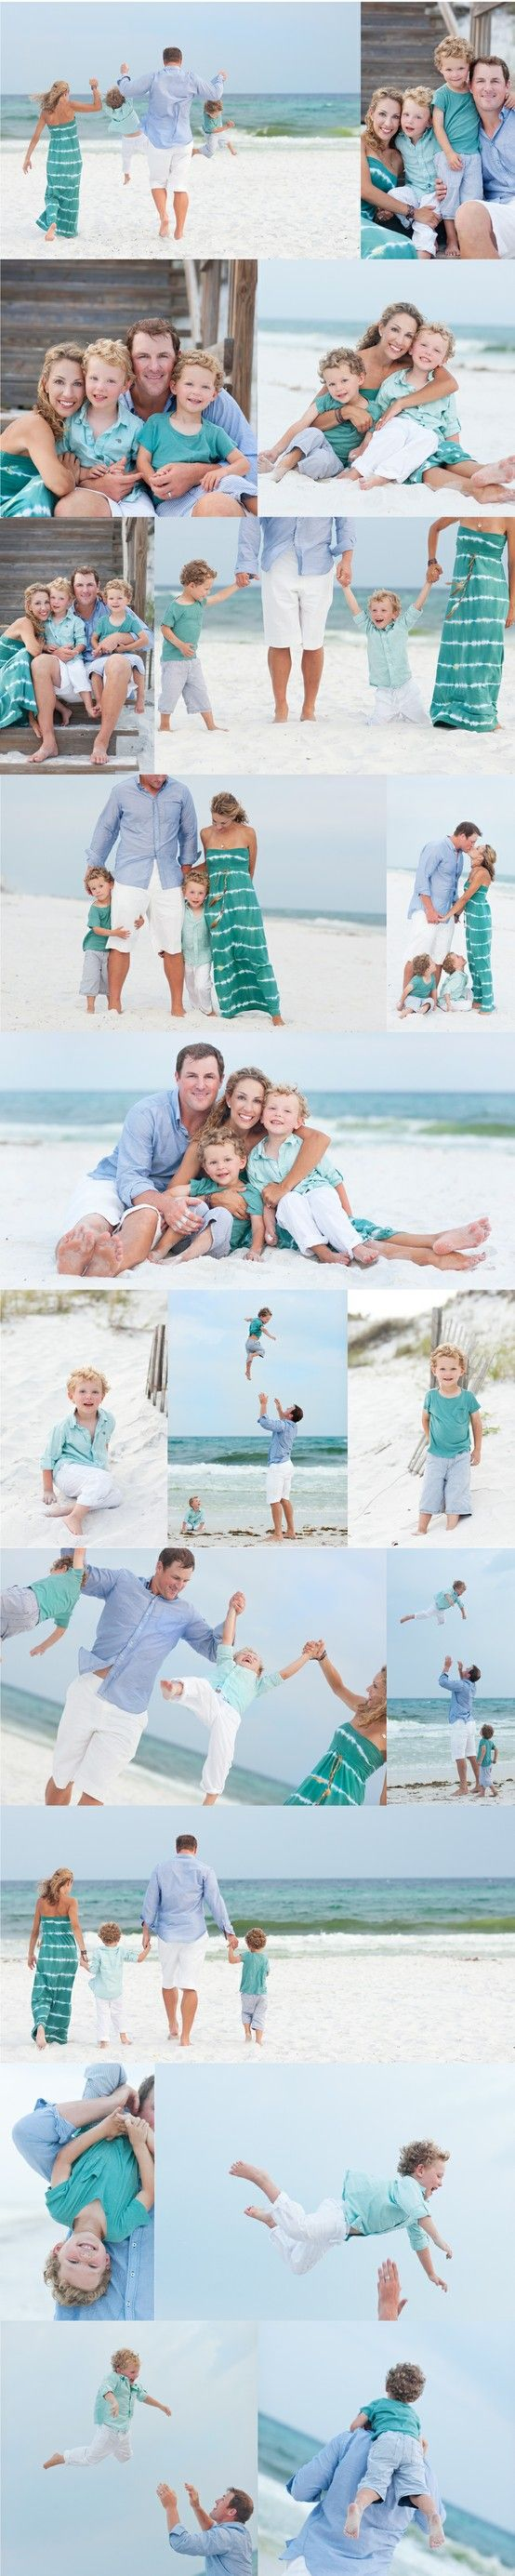 Beautiful Beach Family Photos. Love the color scheme.